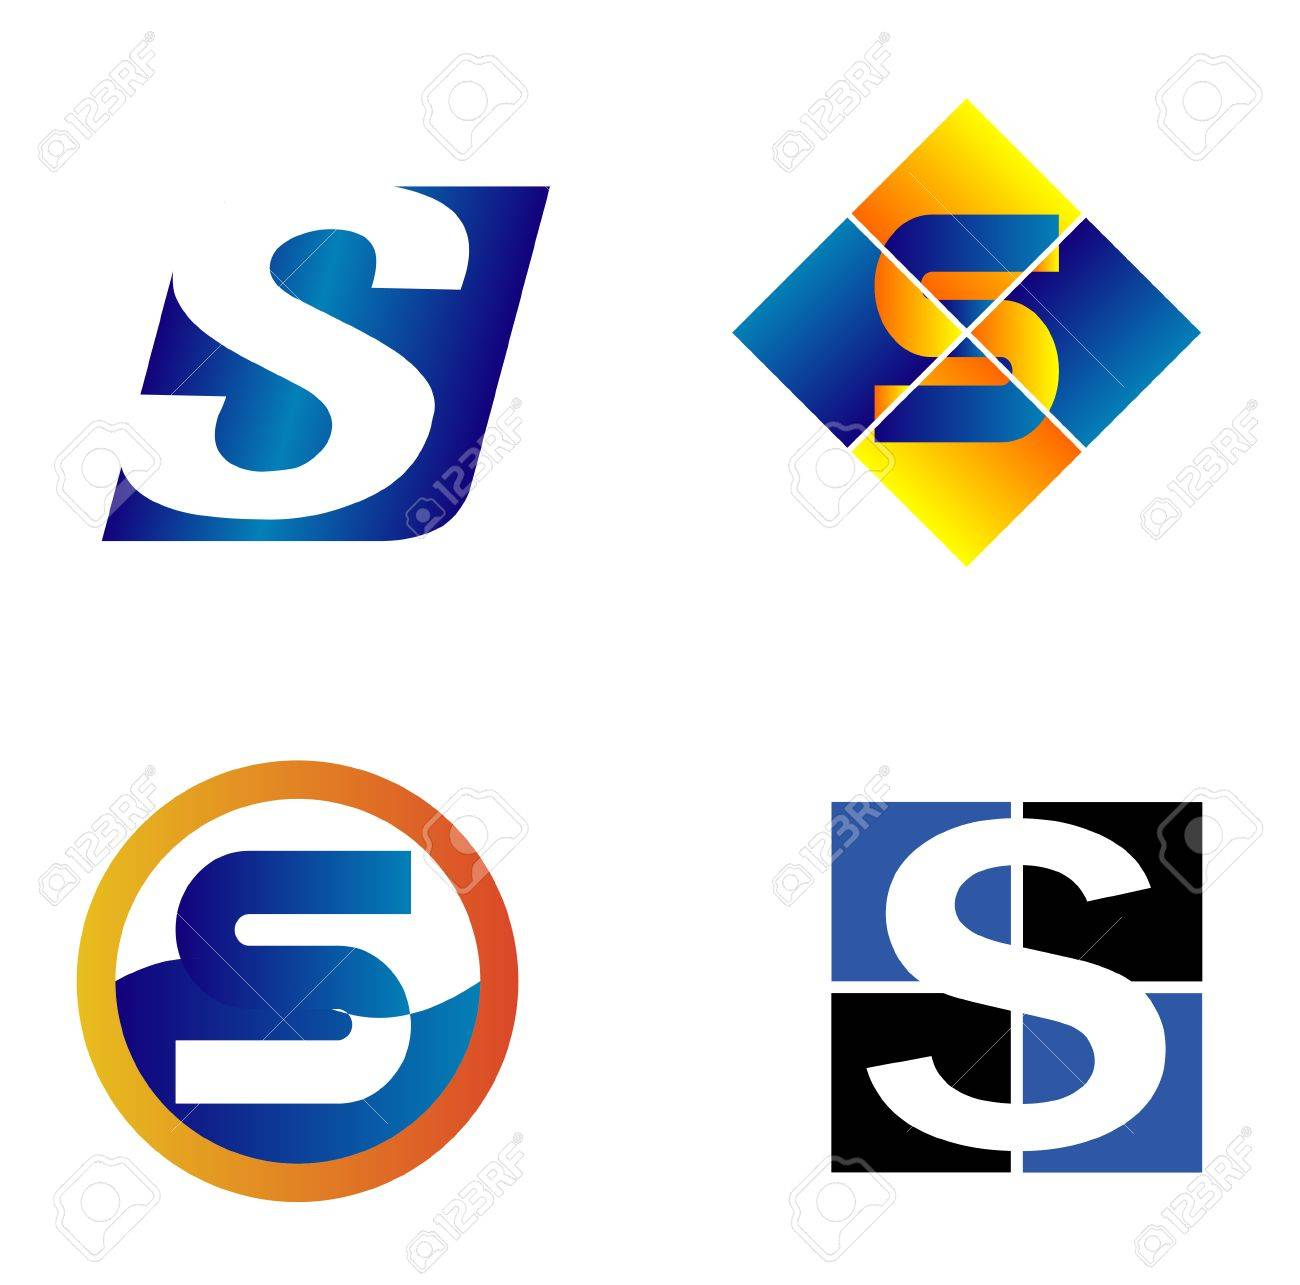 Alphabet Symbols And Elements Of Letter S Such A Icon Royalty Free